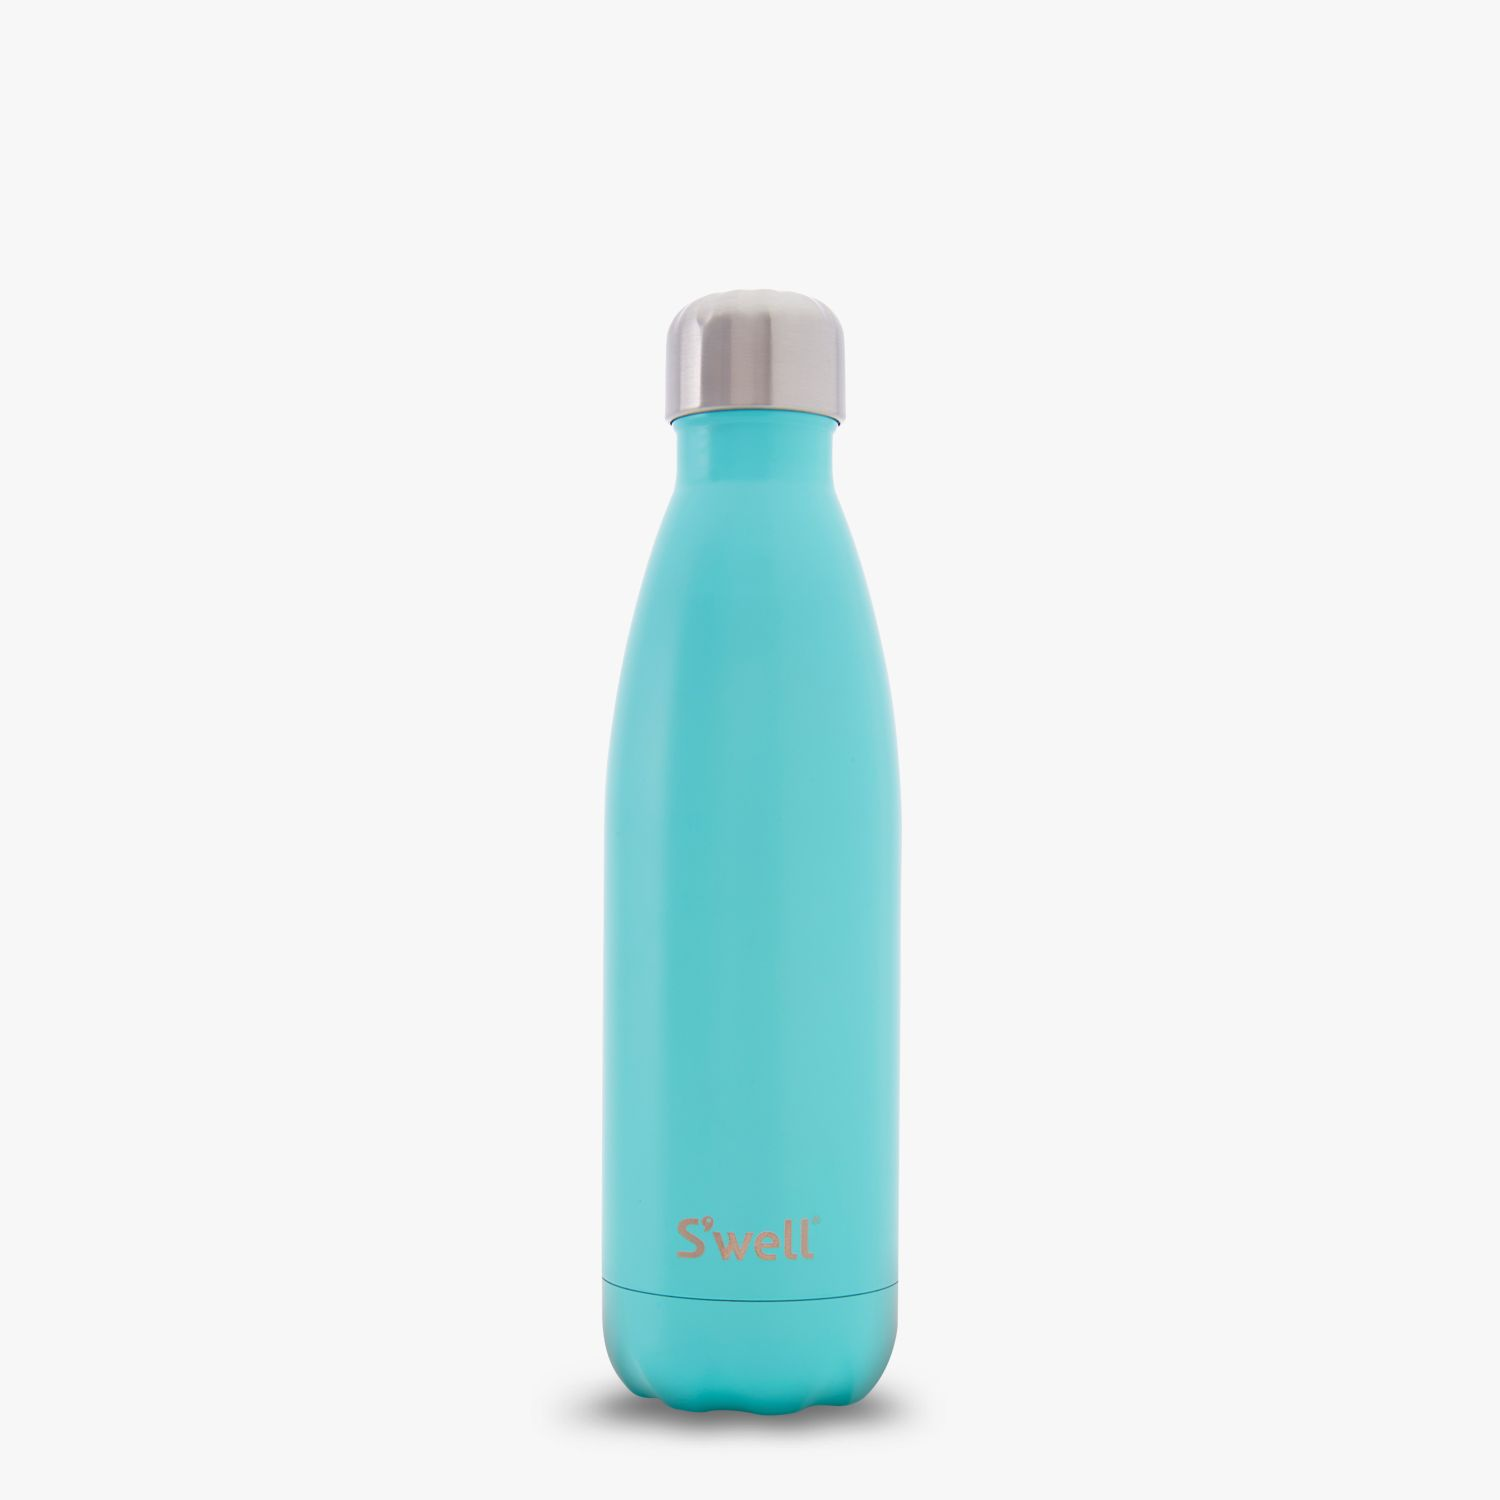 The New Swell Bottle Turquoise Blue Featured In A Teal